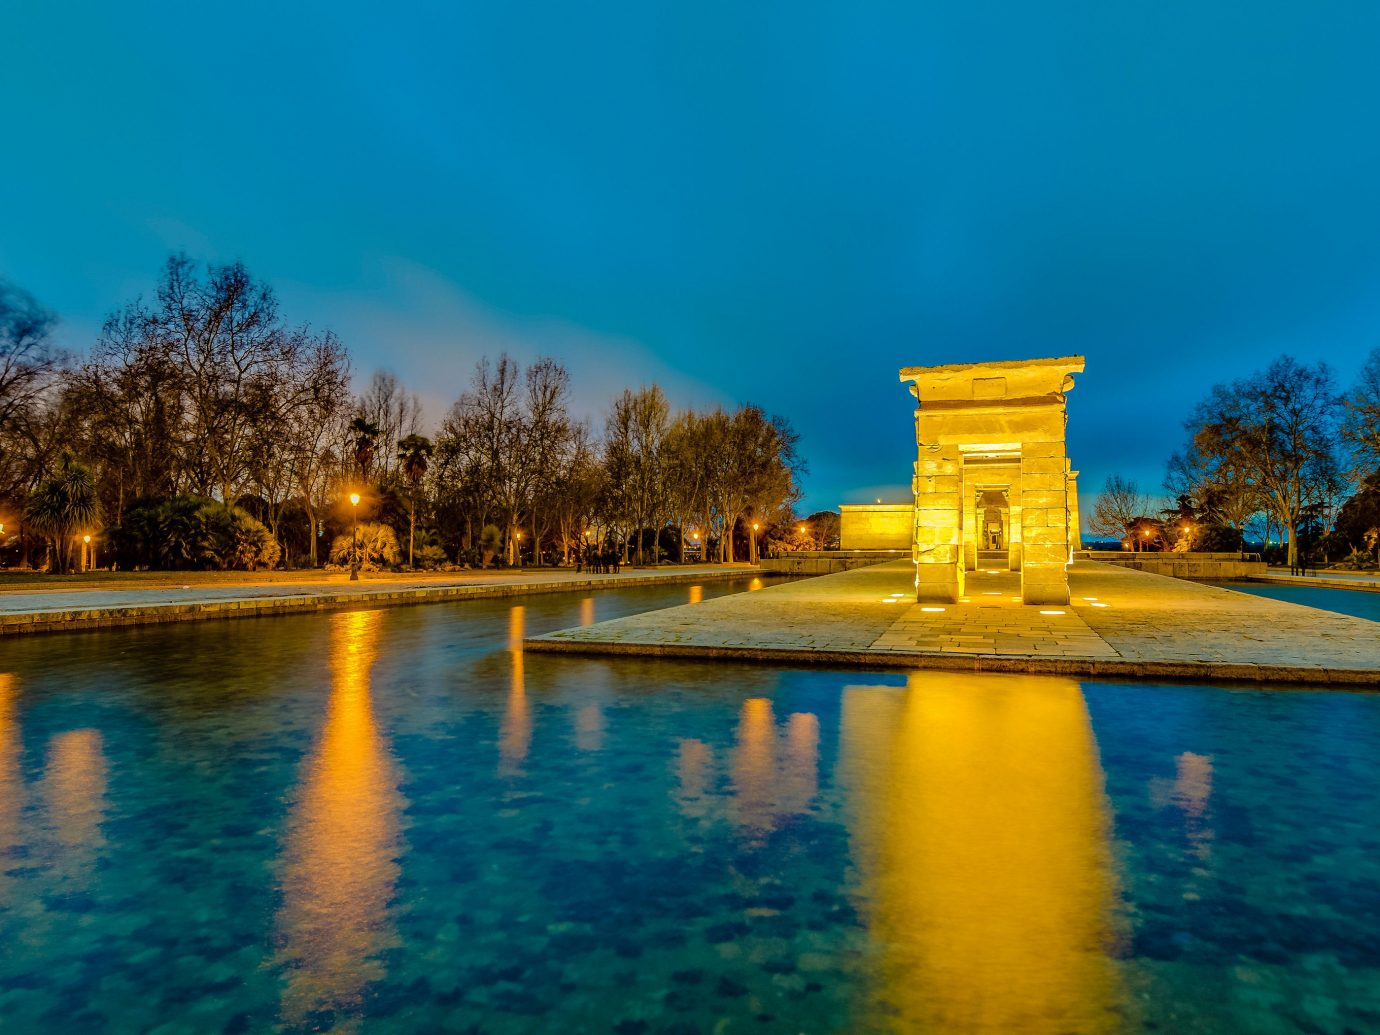 Spring Trips Trip Ideas reflection blue Nature water sky landmark tourist attraction tree evening reflecting pool morning water feature daytime dusk cloud landscape estate tourism dawn historic site plant computer wallpaper leisure night horizon watercourse